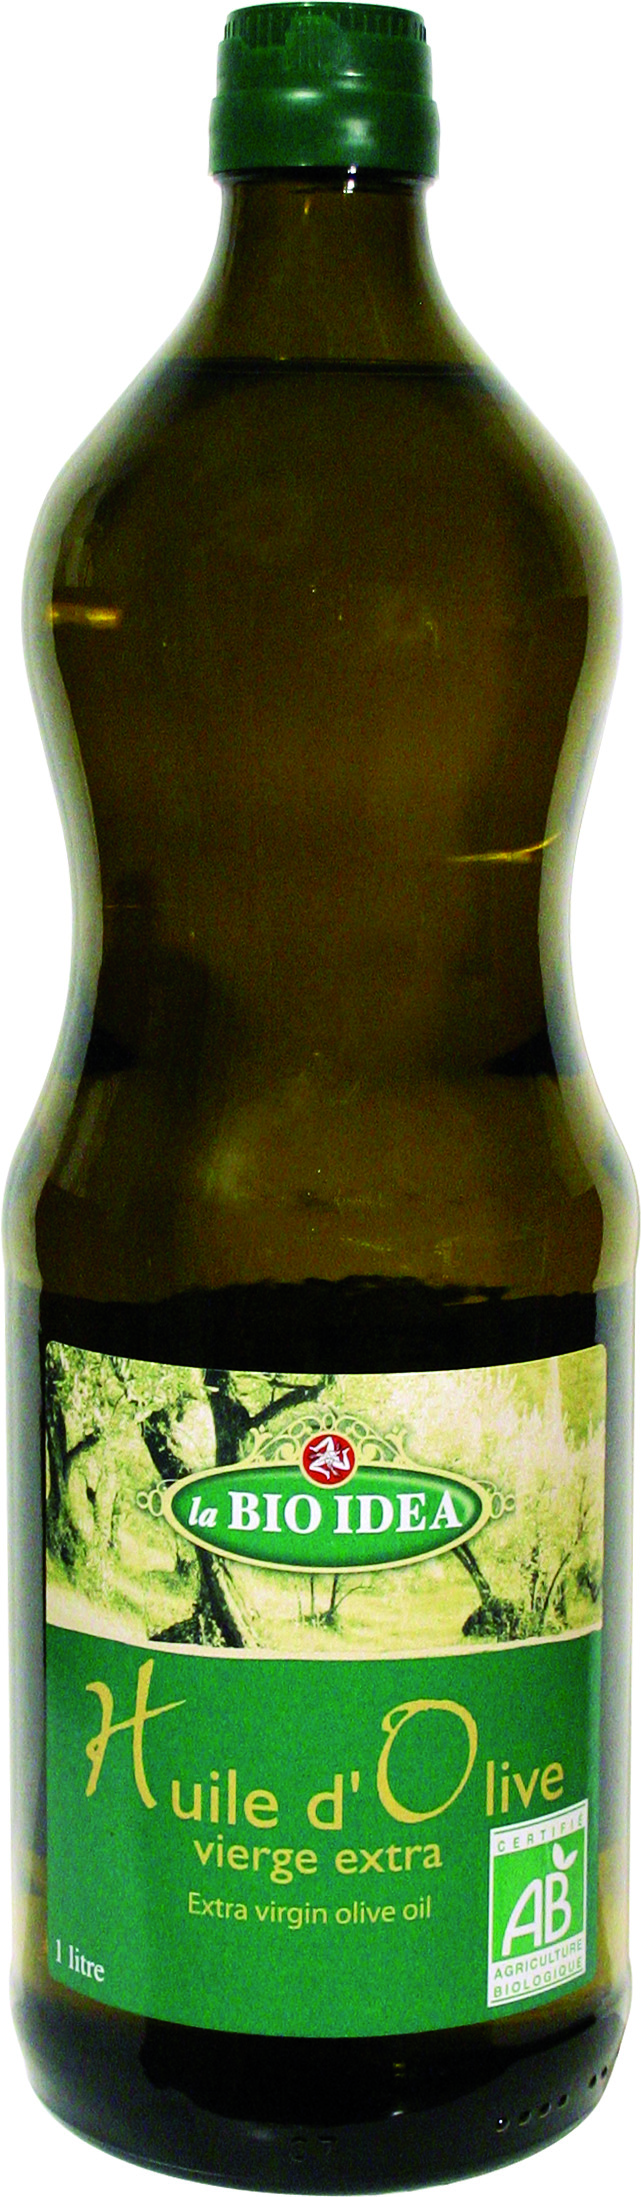 Huile d'Olive vierge - 1L